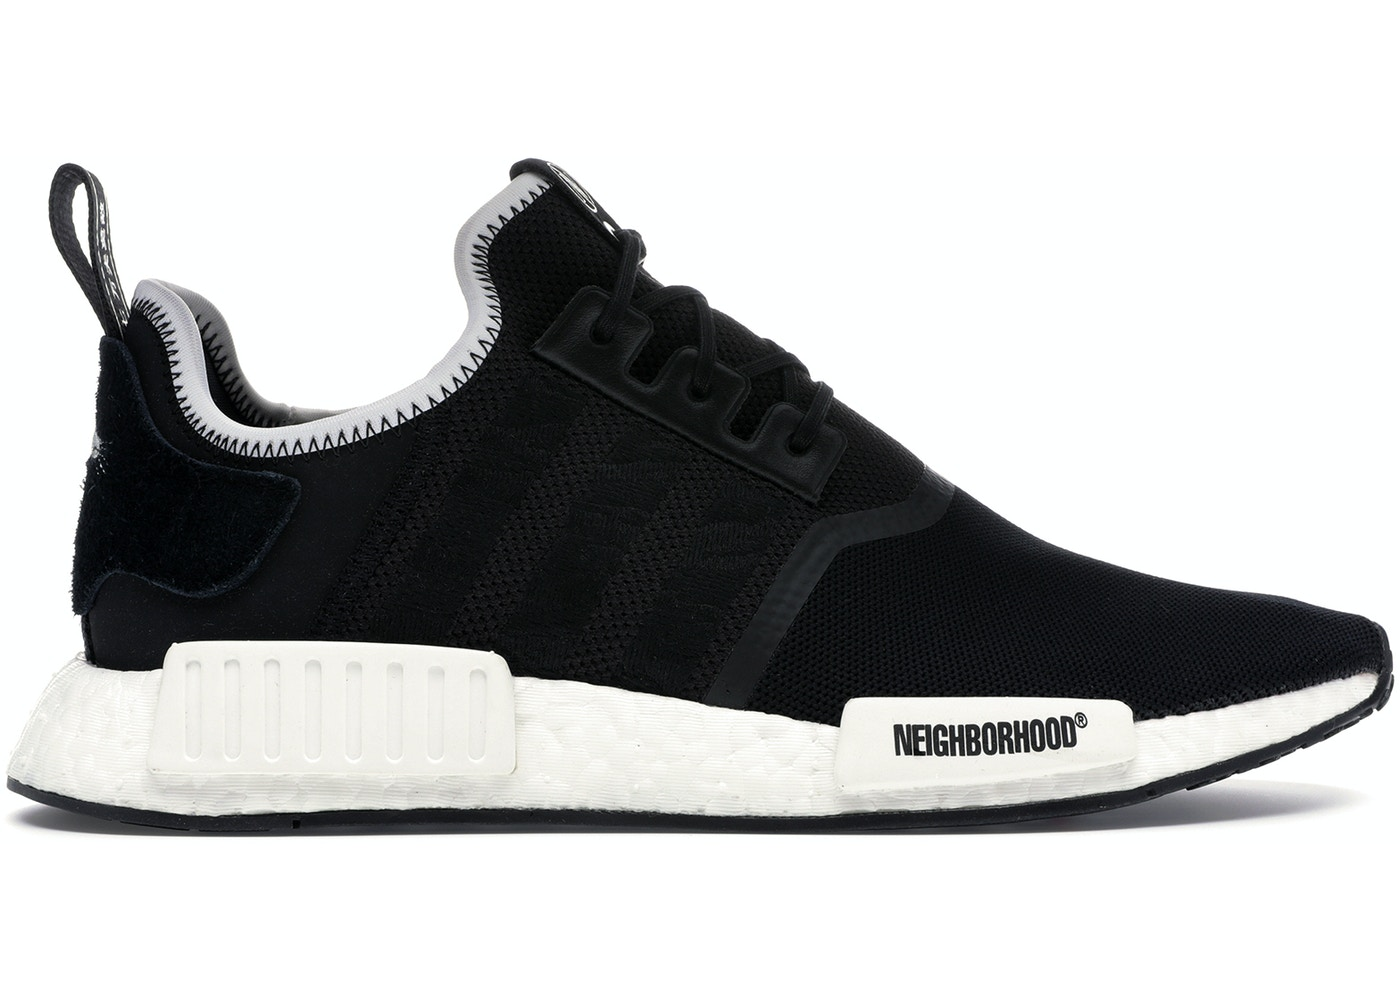 new concept e6320 336ff adidas NMD R1 Neighborhood x Invincible